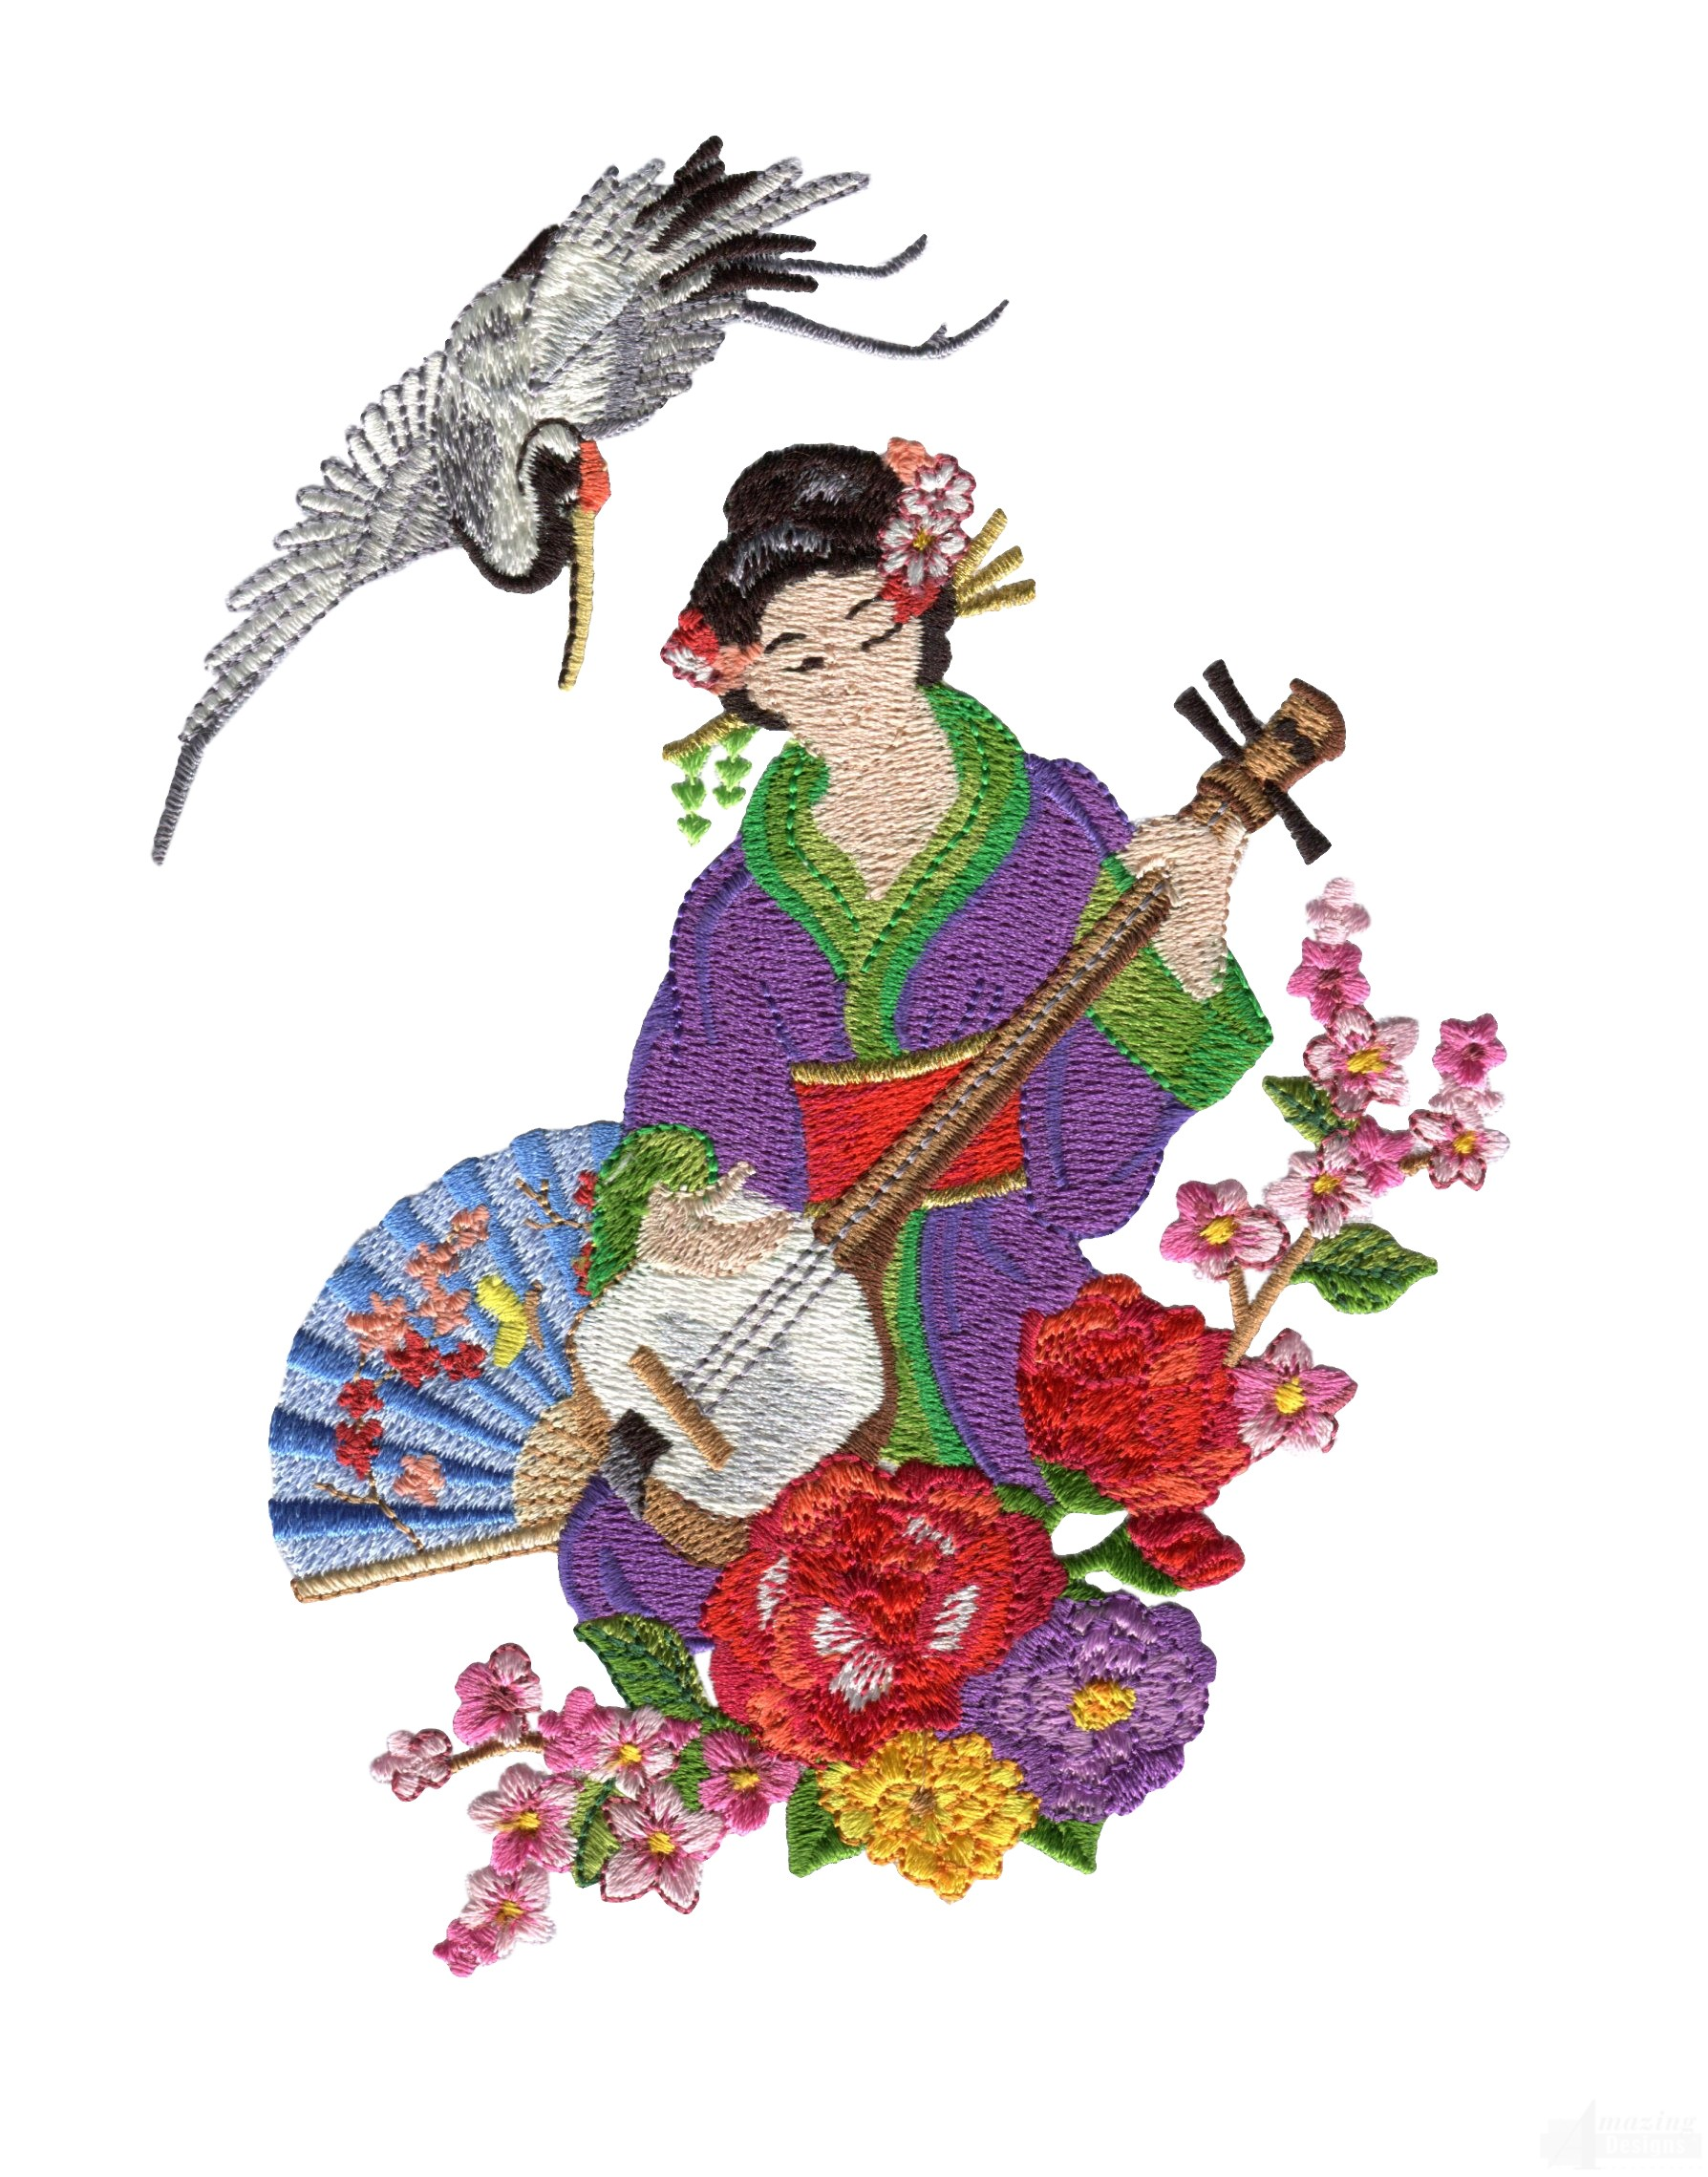 Swngg109 a geishas garden embroidery design for Garden embroidery designs free